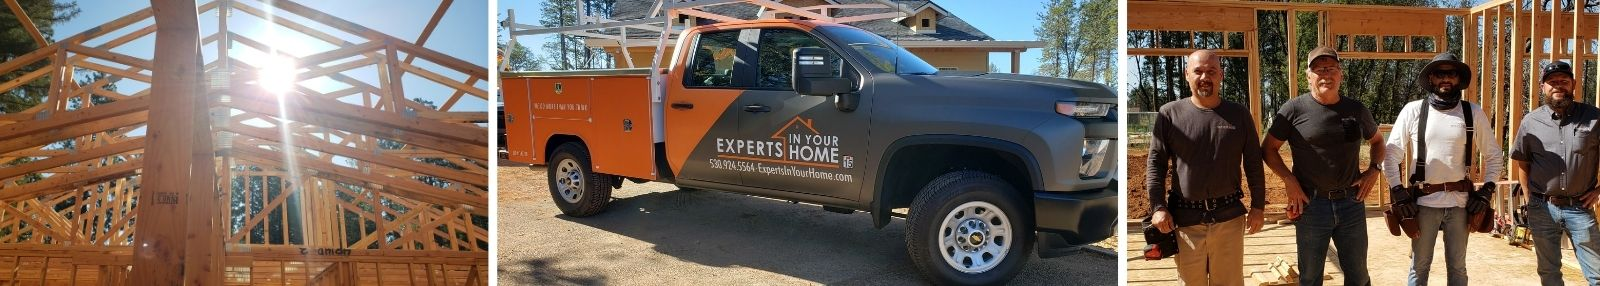 Experts remodeling page header 2020